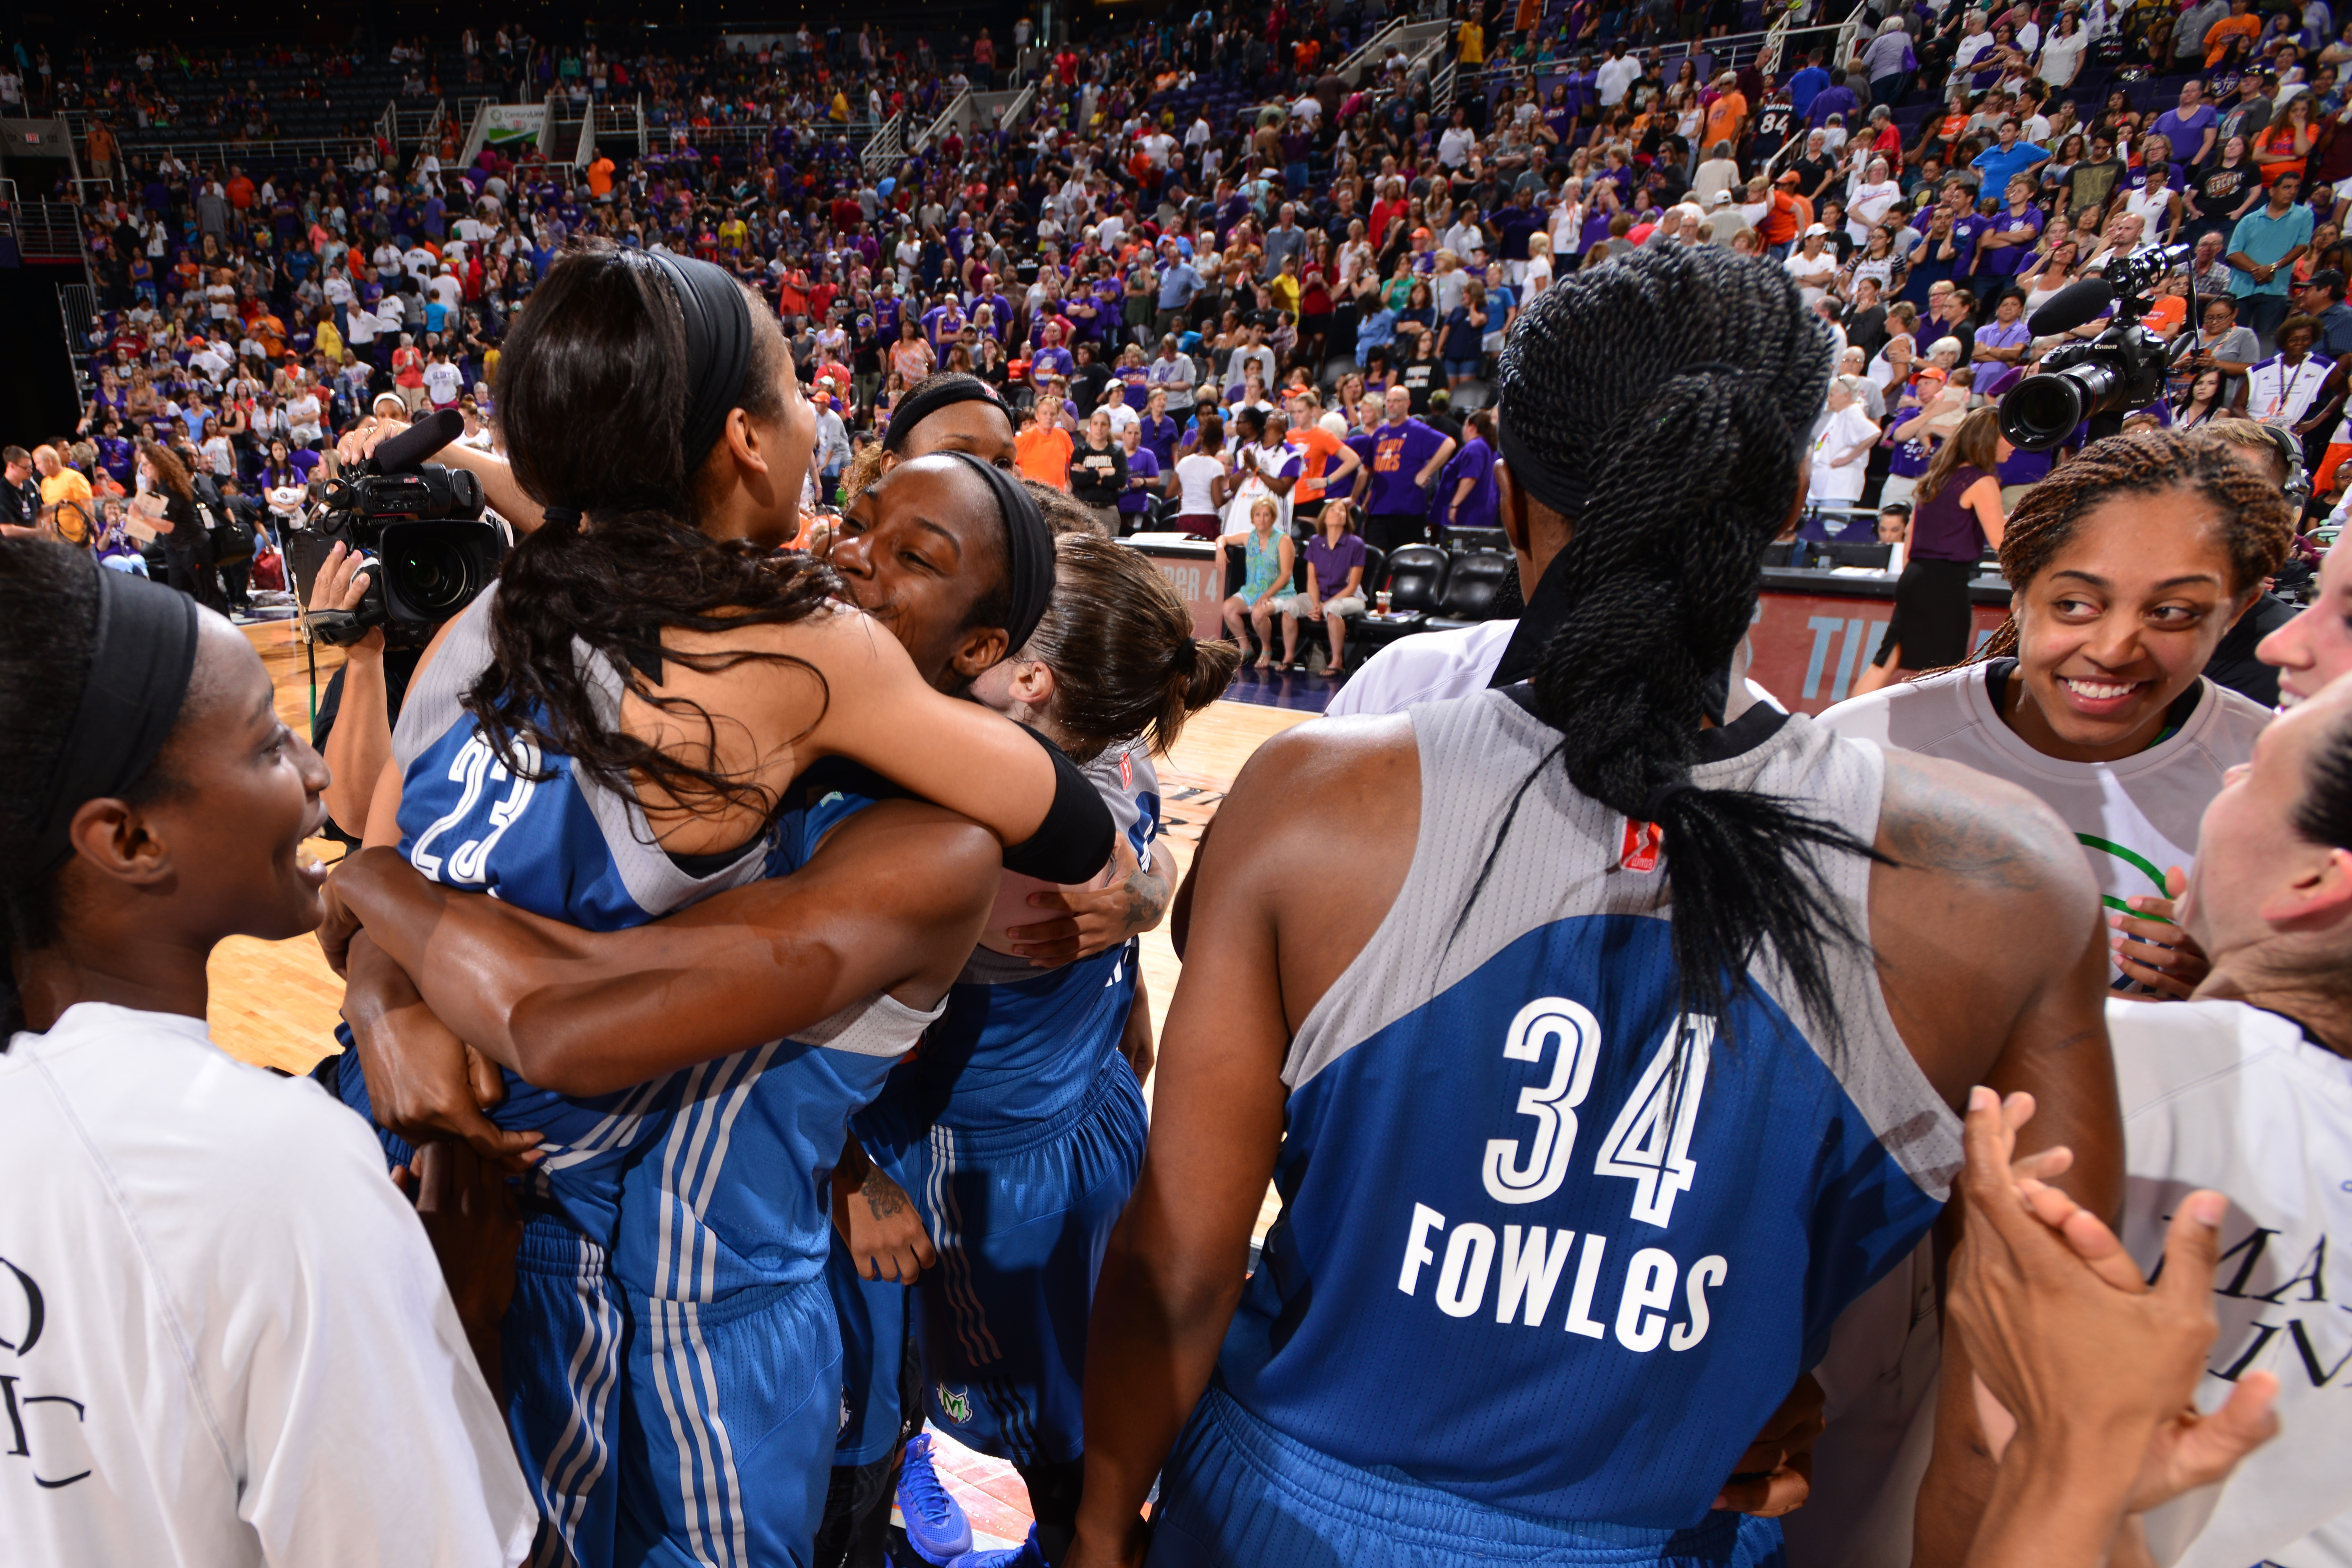 PHOENIX, AZ - SEPTEMBER 27:  The Minnesota Lynx celebrate their win against the Phoenix Mercury during the WNBA Playoffs Western Conference Finals Game 2 on September 27, 2015 at the Talking Stick Resort Arena in Phoenix, Arizona. (Photo by Barry Gossage/